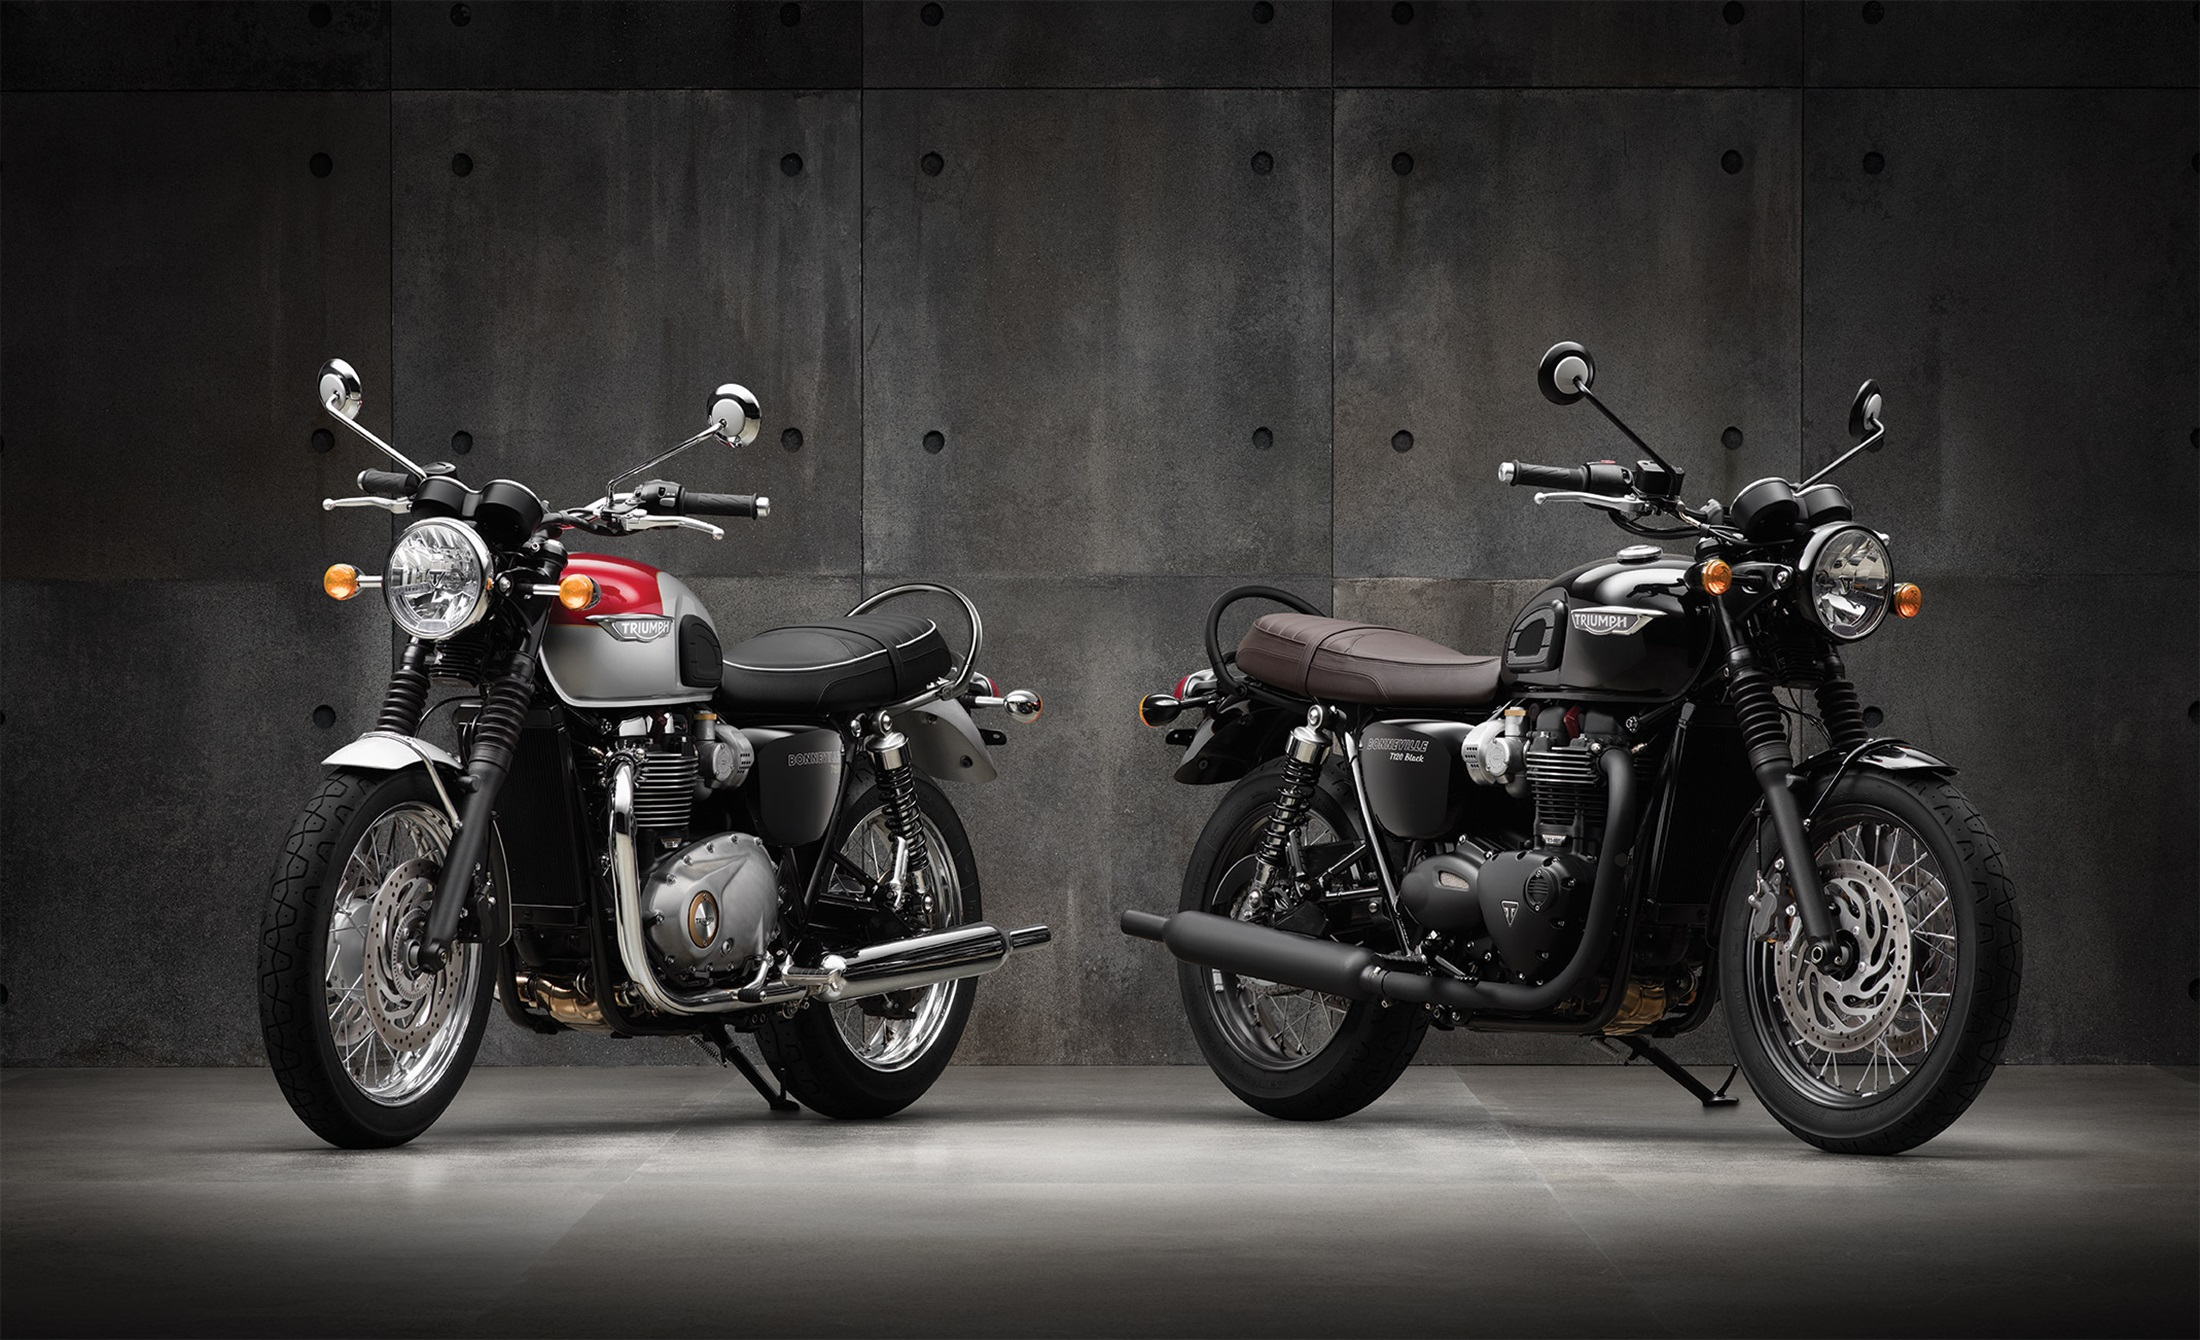 Triumph Bonneville T120 and Bonneville T120 Black